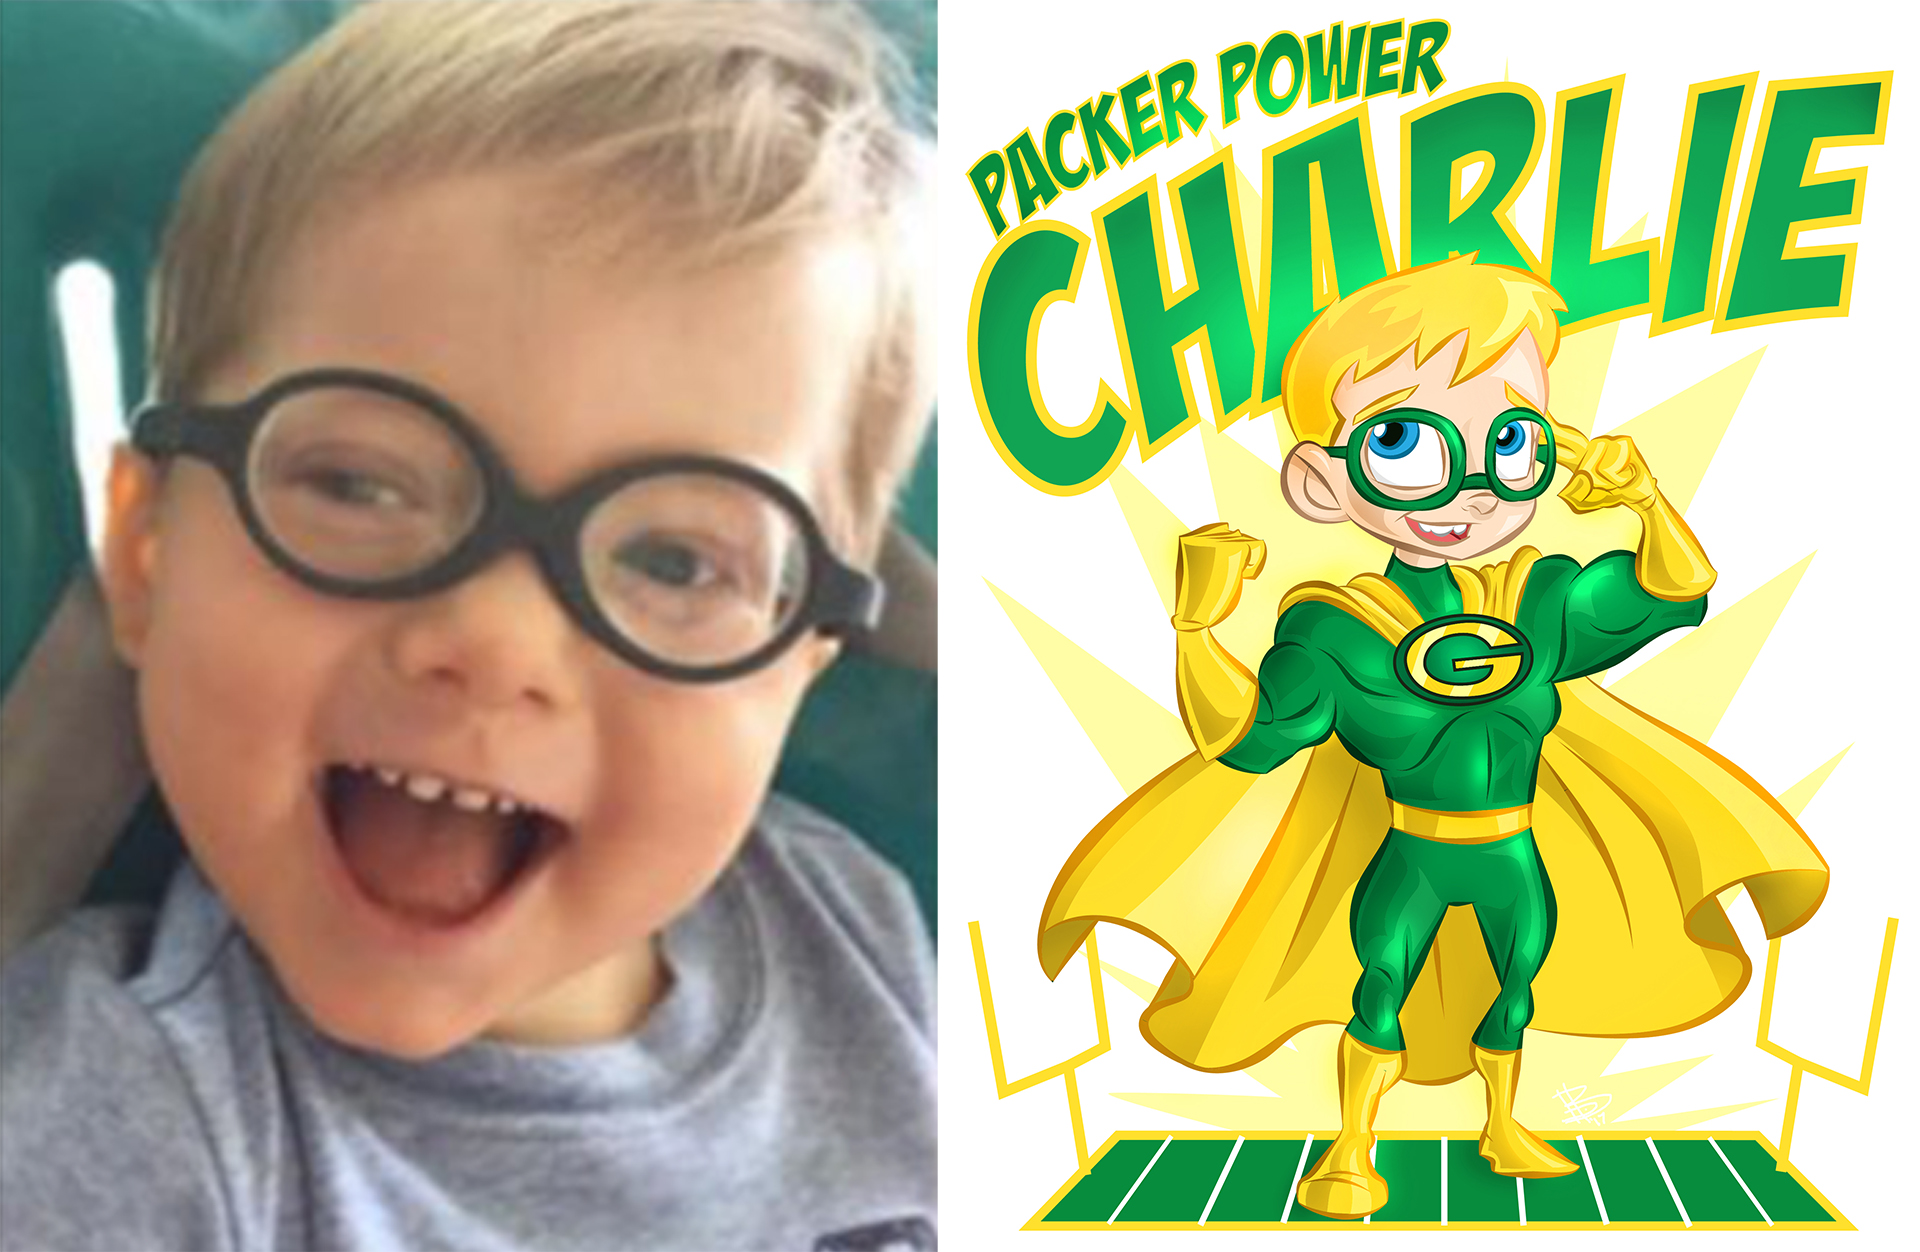 Charlie (Packer Power Charlie)